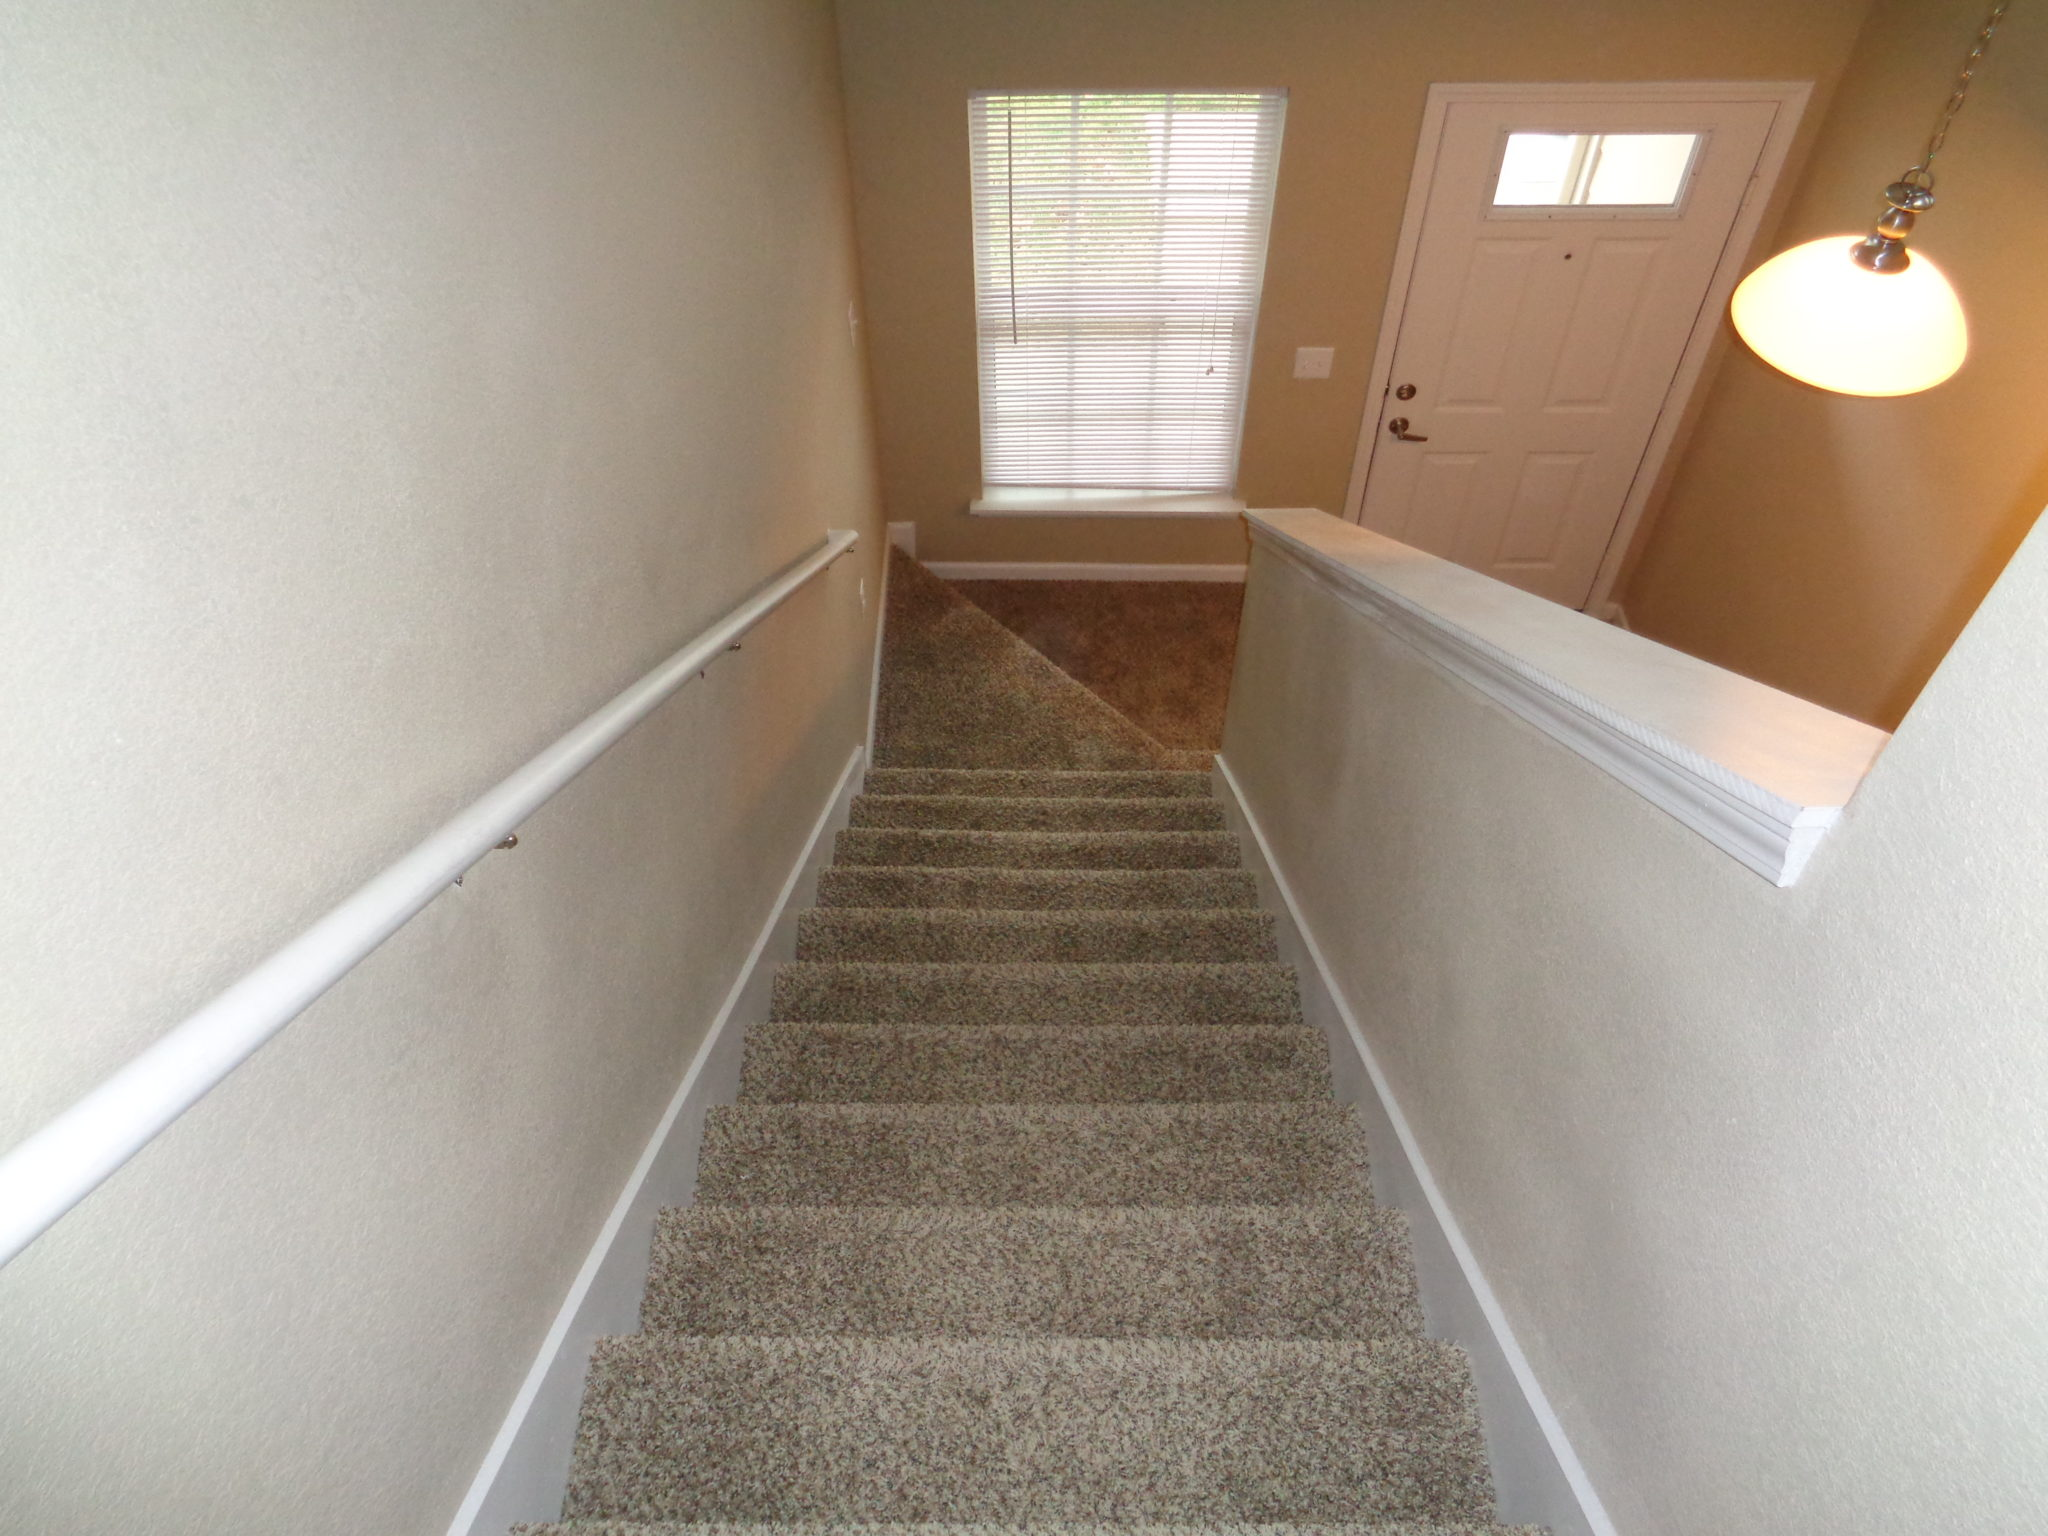 Ridgway Villas Raymore MO staircase